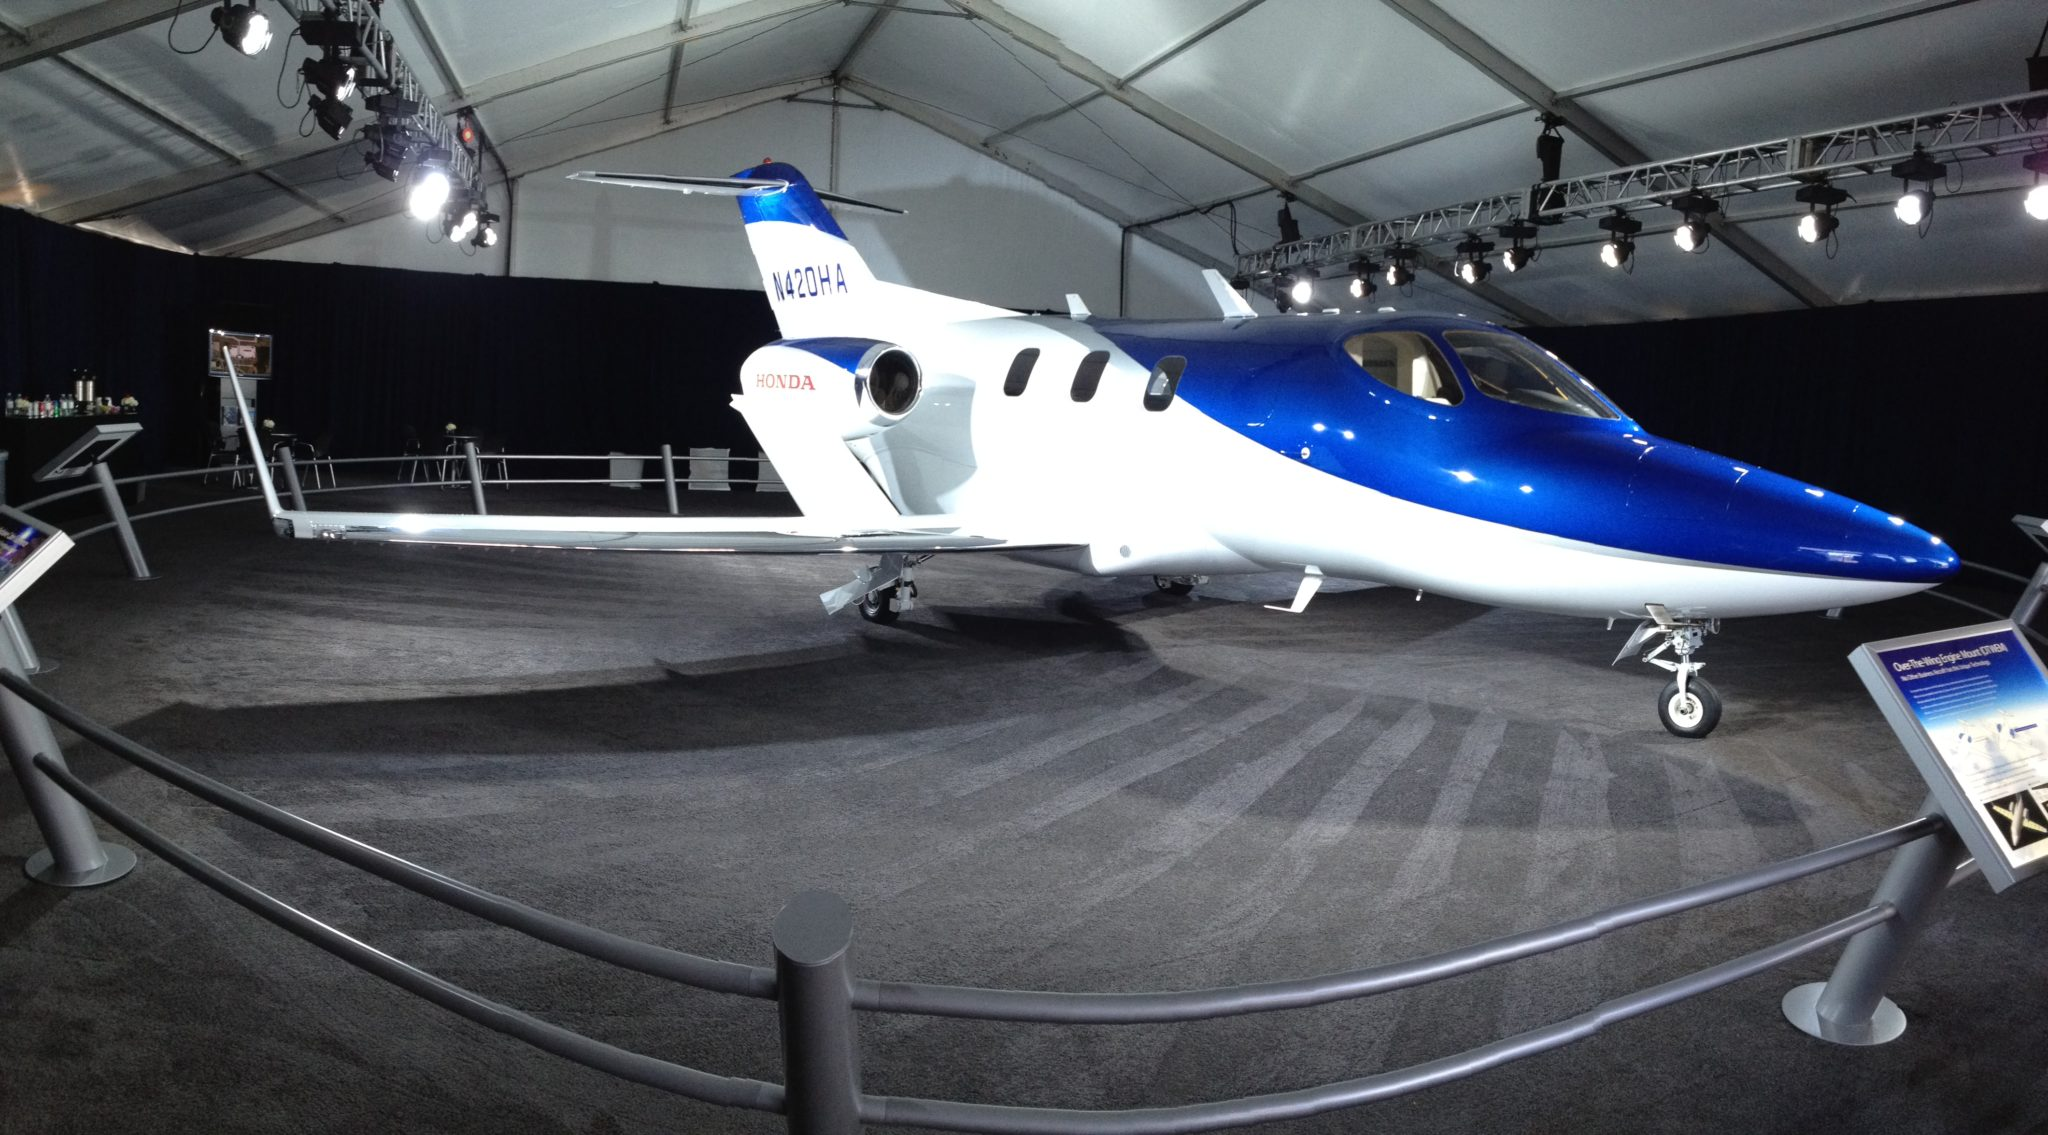 HondaJet Certification Pushed Out to Late 2014